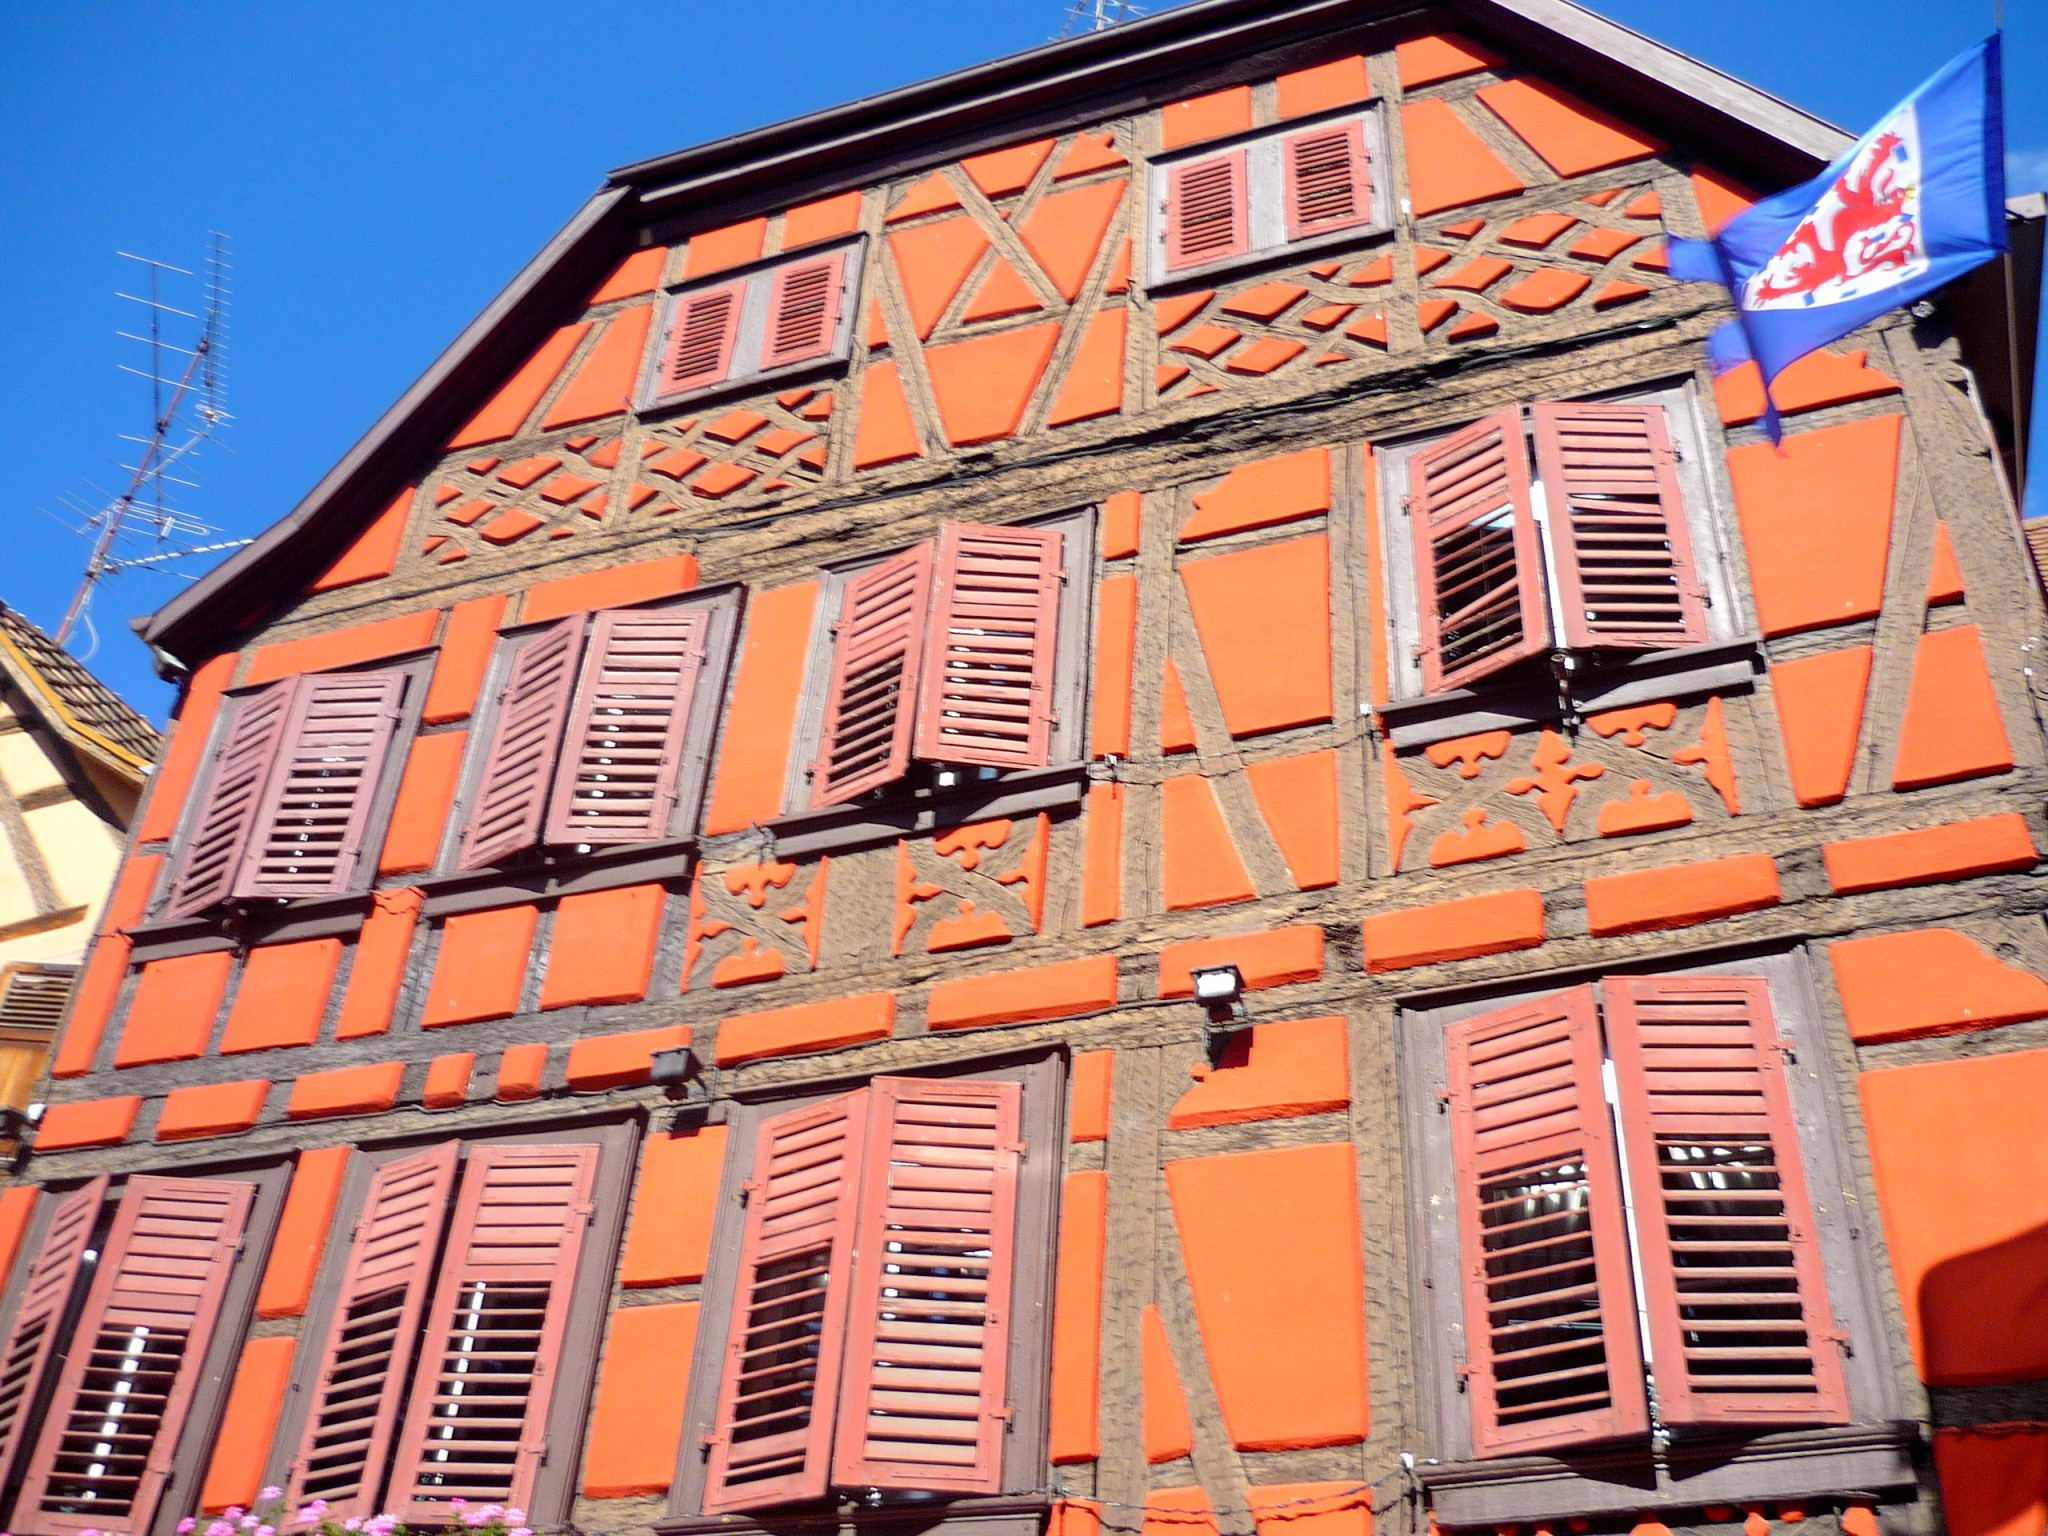 Siedel House, Ribeauvillé © French Moments